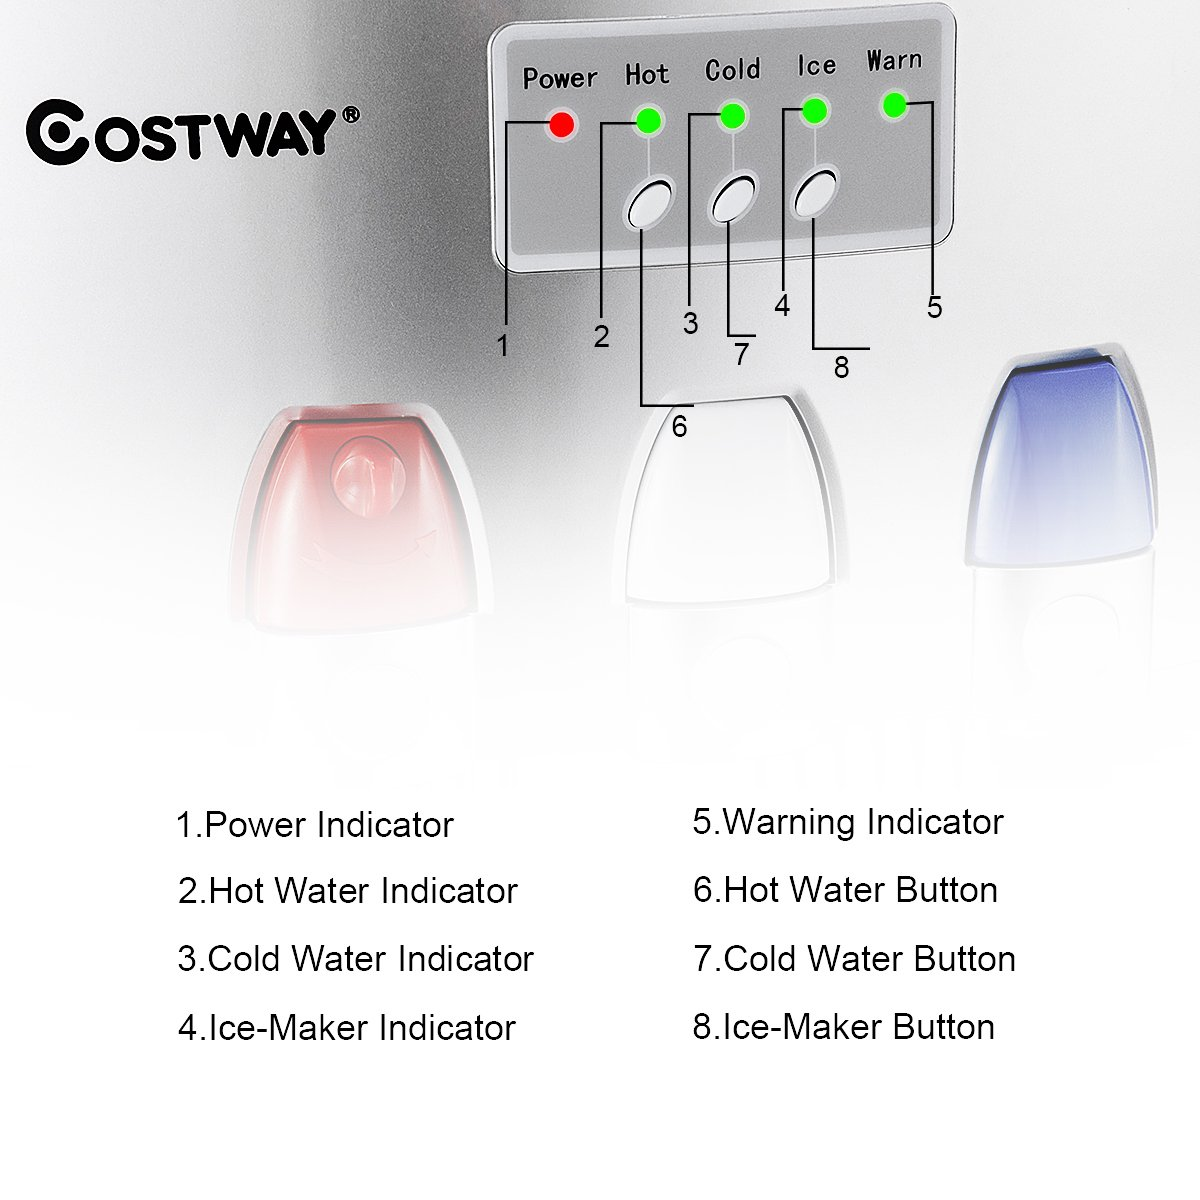 Costway 2-in-1 Water Cooler Dispenser with Built-in Ice Maker Freestanding Hot Cold Top Loading Water Dispenser 27LB/24H Ice Machine with Child Safety Lock, Silver by COSTWAY (Image #4)